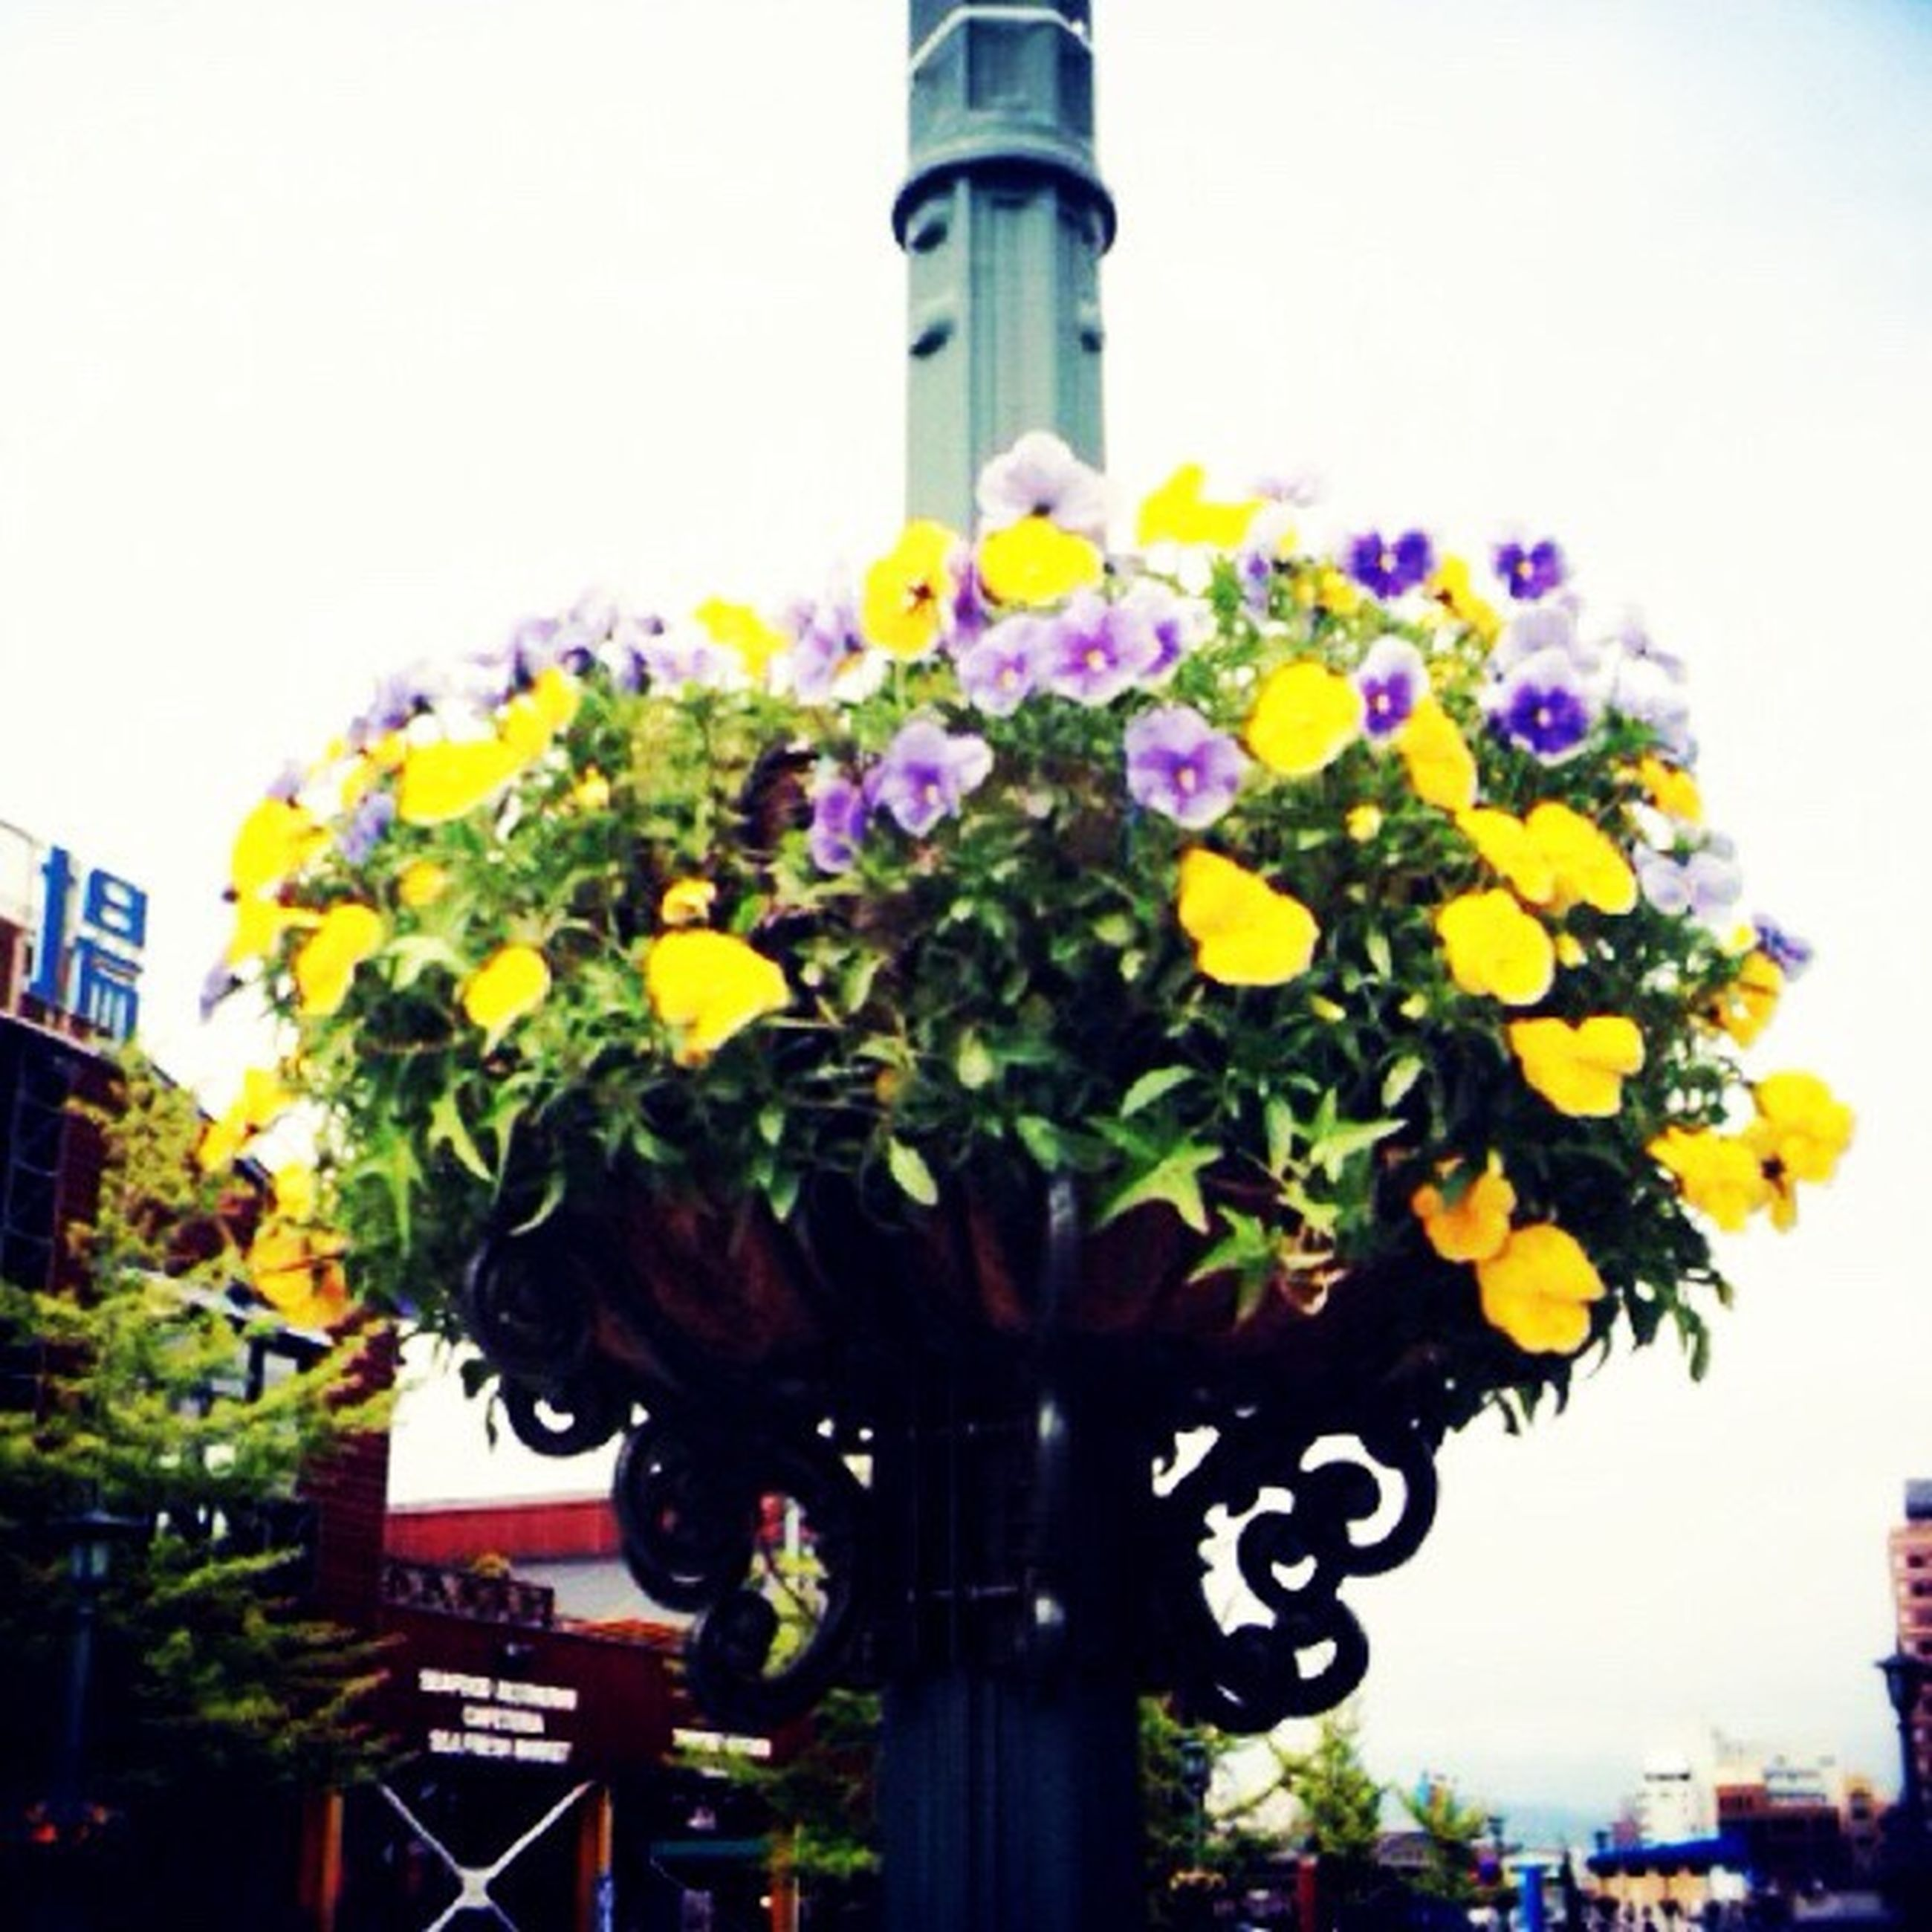 flower, architecture, built structure, low angle view, building exterior, clear sky, freshness, fragility, multi colored, plant, growth, day, sky, lighting equipment, yellow, outdoors, blue, blooming, no people, decoration